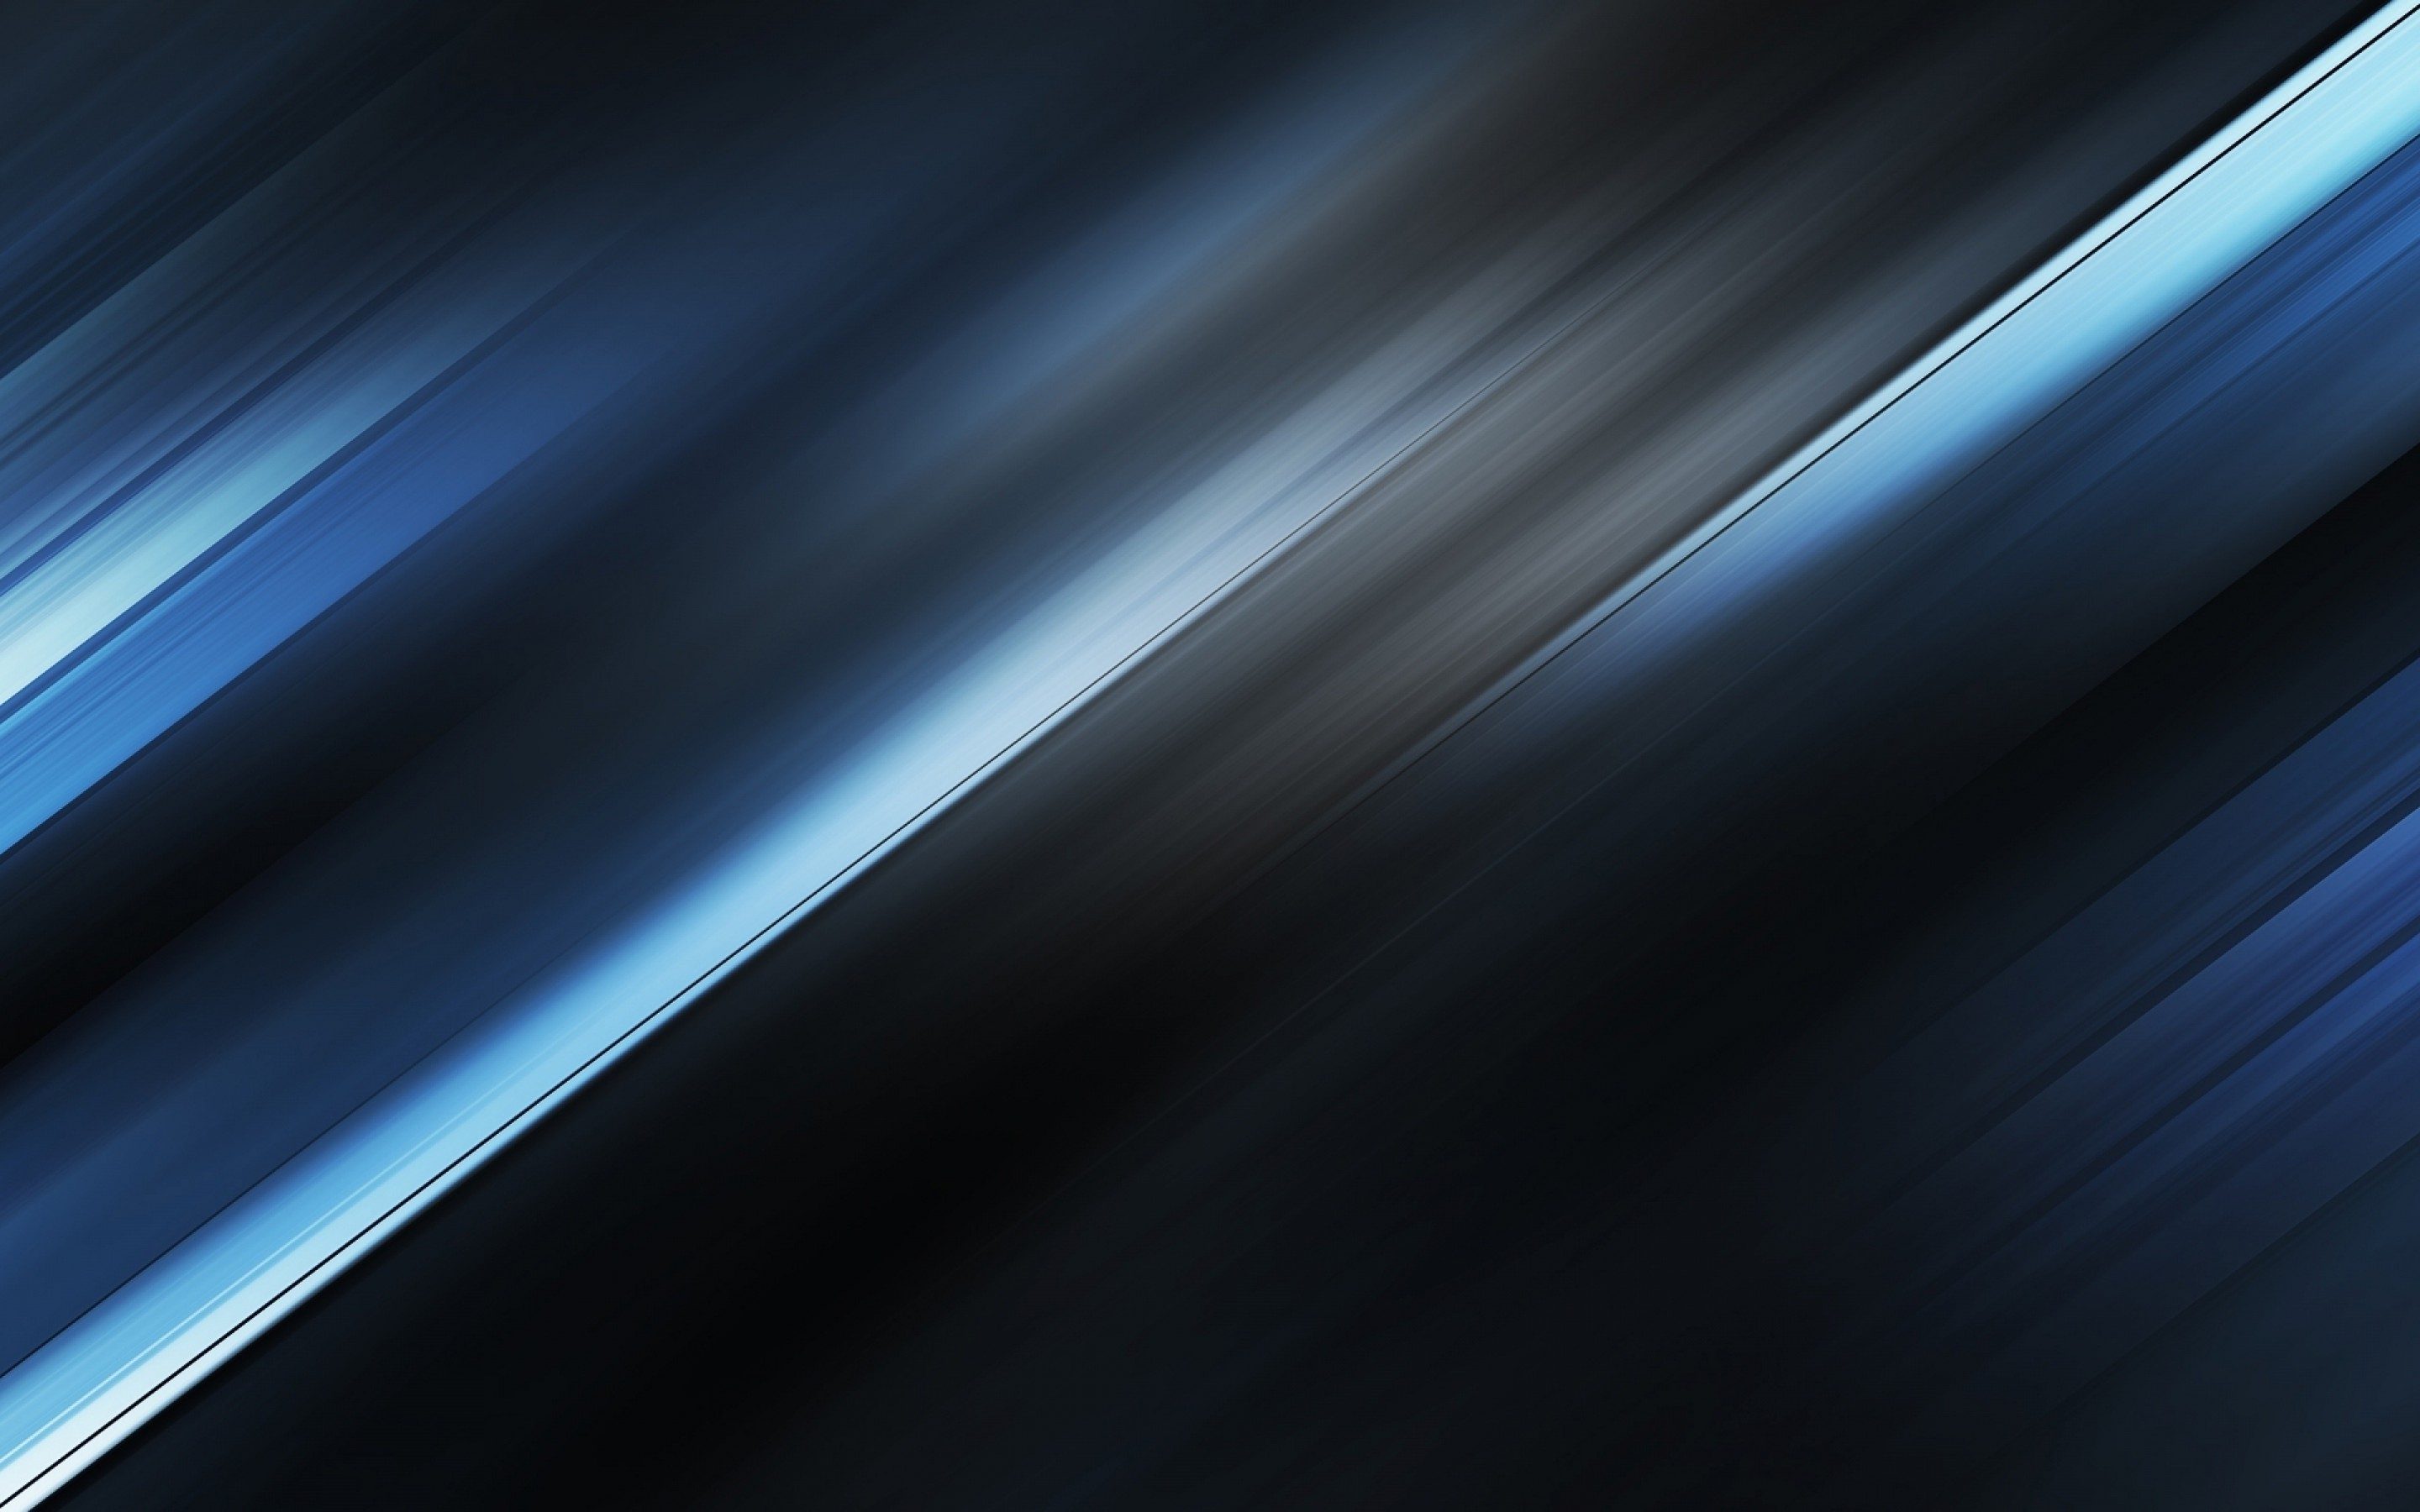 Abstract Blue Metallic Blurred Breeze Minimalism Wallpaper 2880x1800